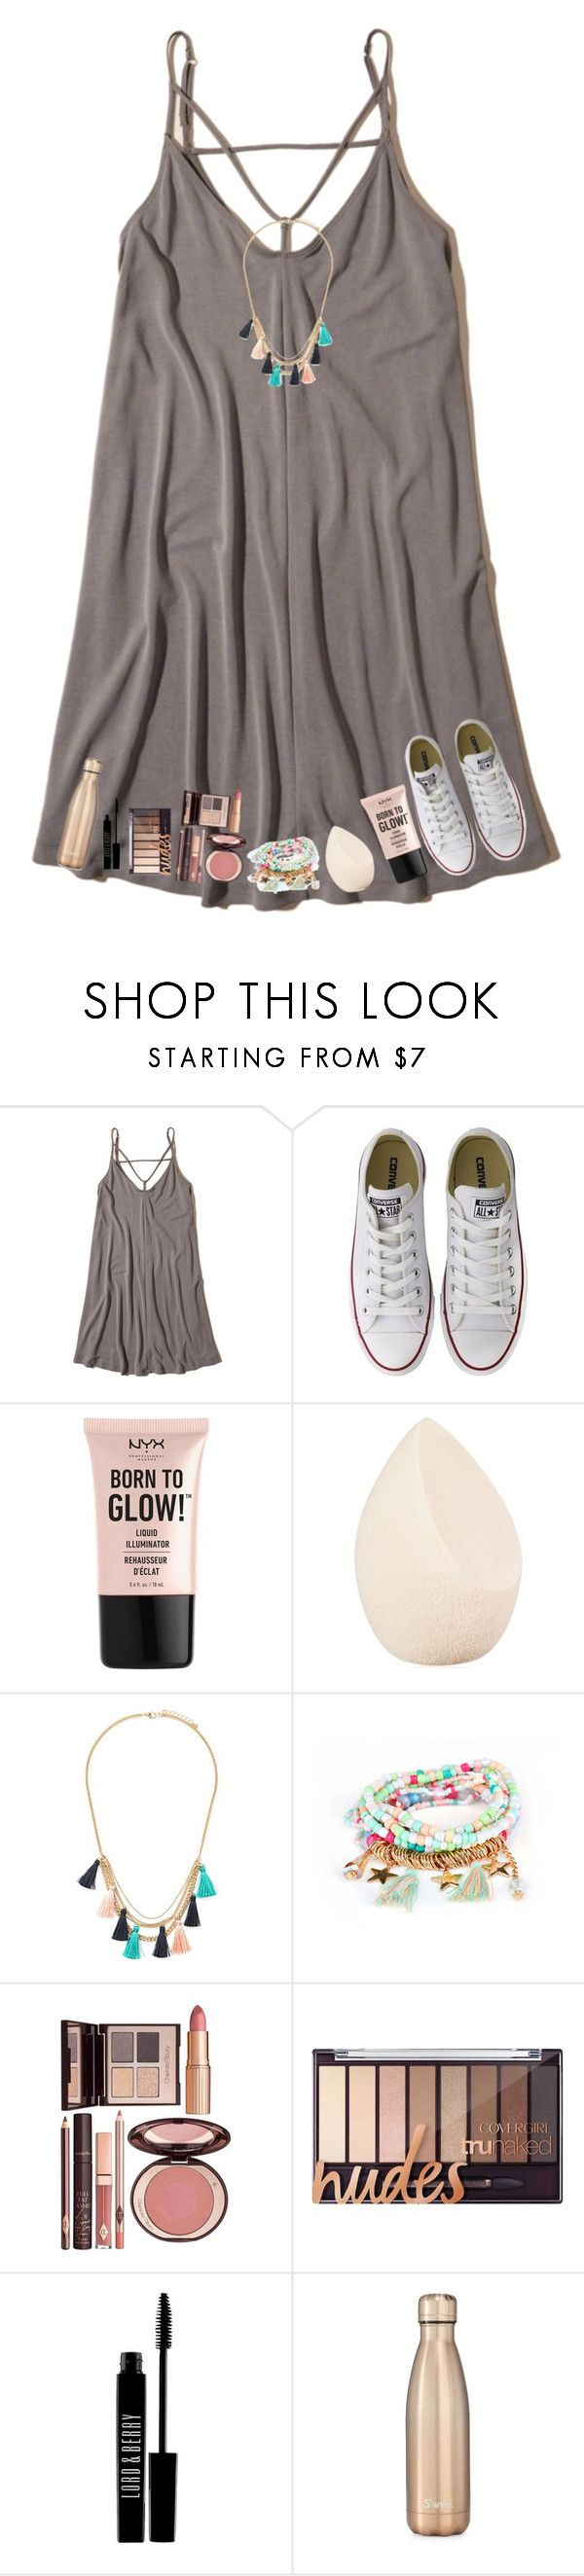 """comment  to join taglist !!"" by nc-preppy-living ❤ liked on Polyvore featuring Hollister Co., Converse, NYX, Christian Dior, Forever 21, Charlotte Tilbury, Lord & Berry and S'well"